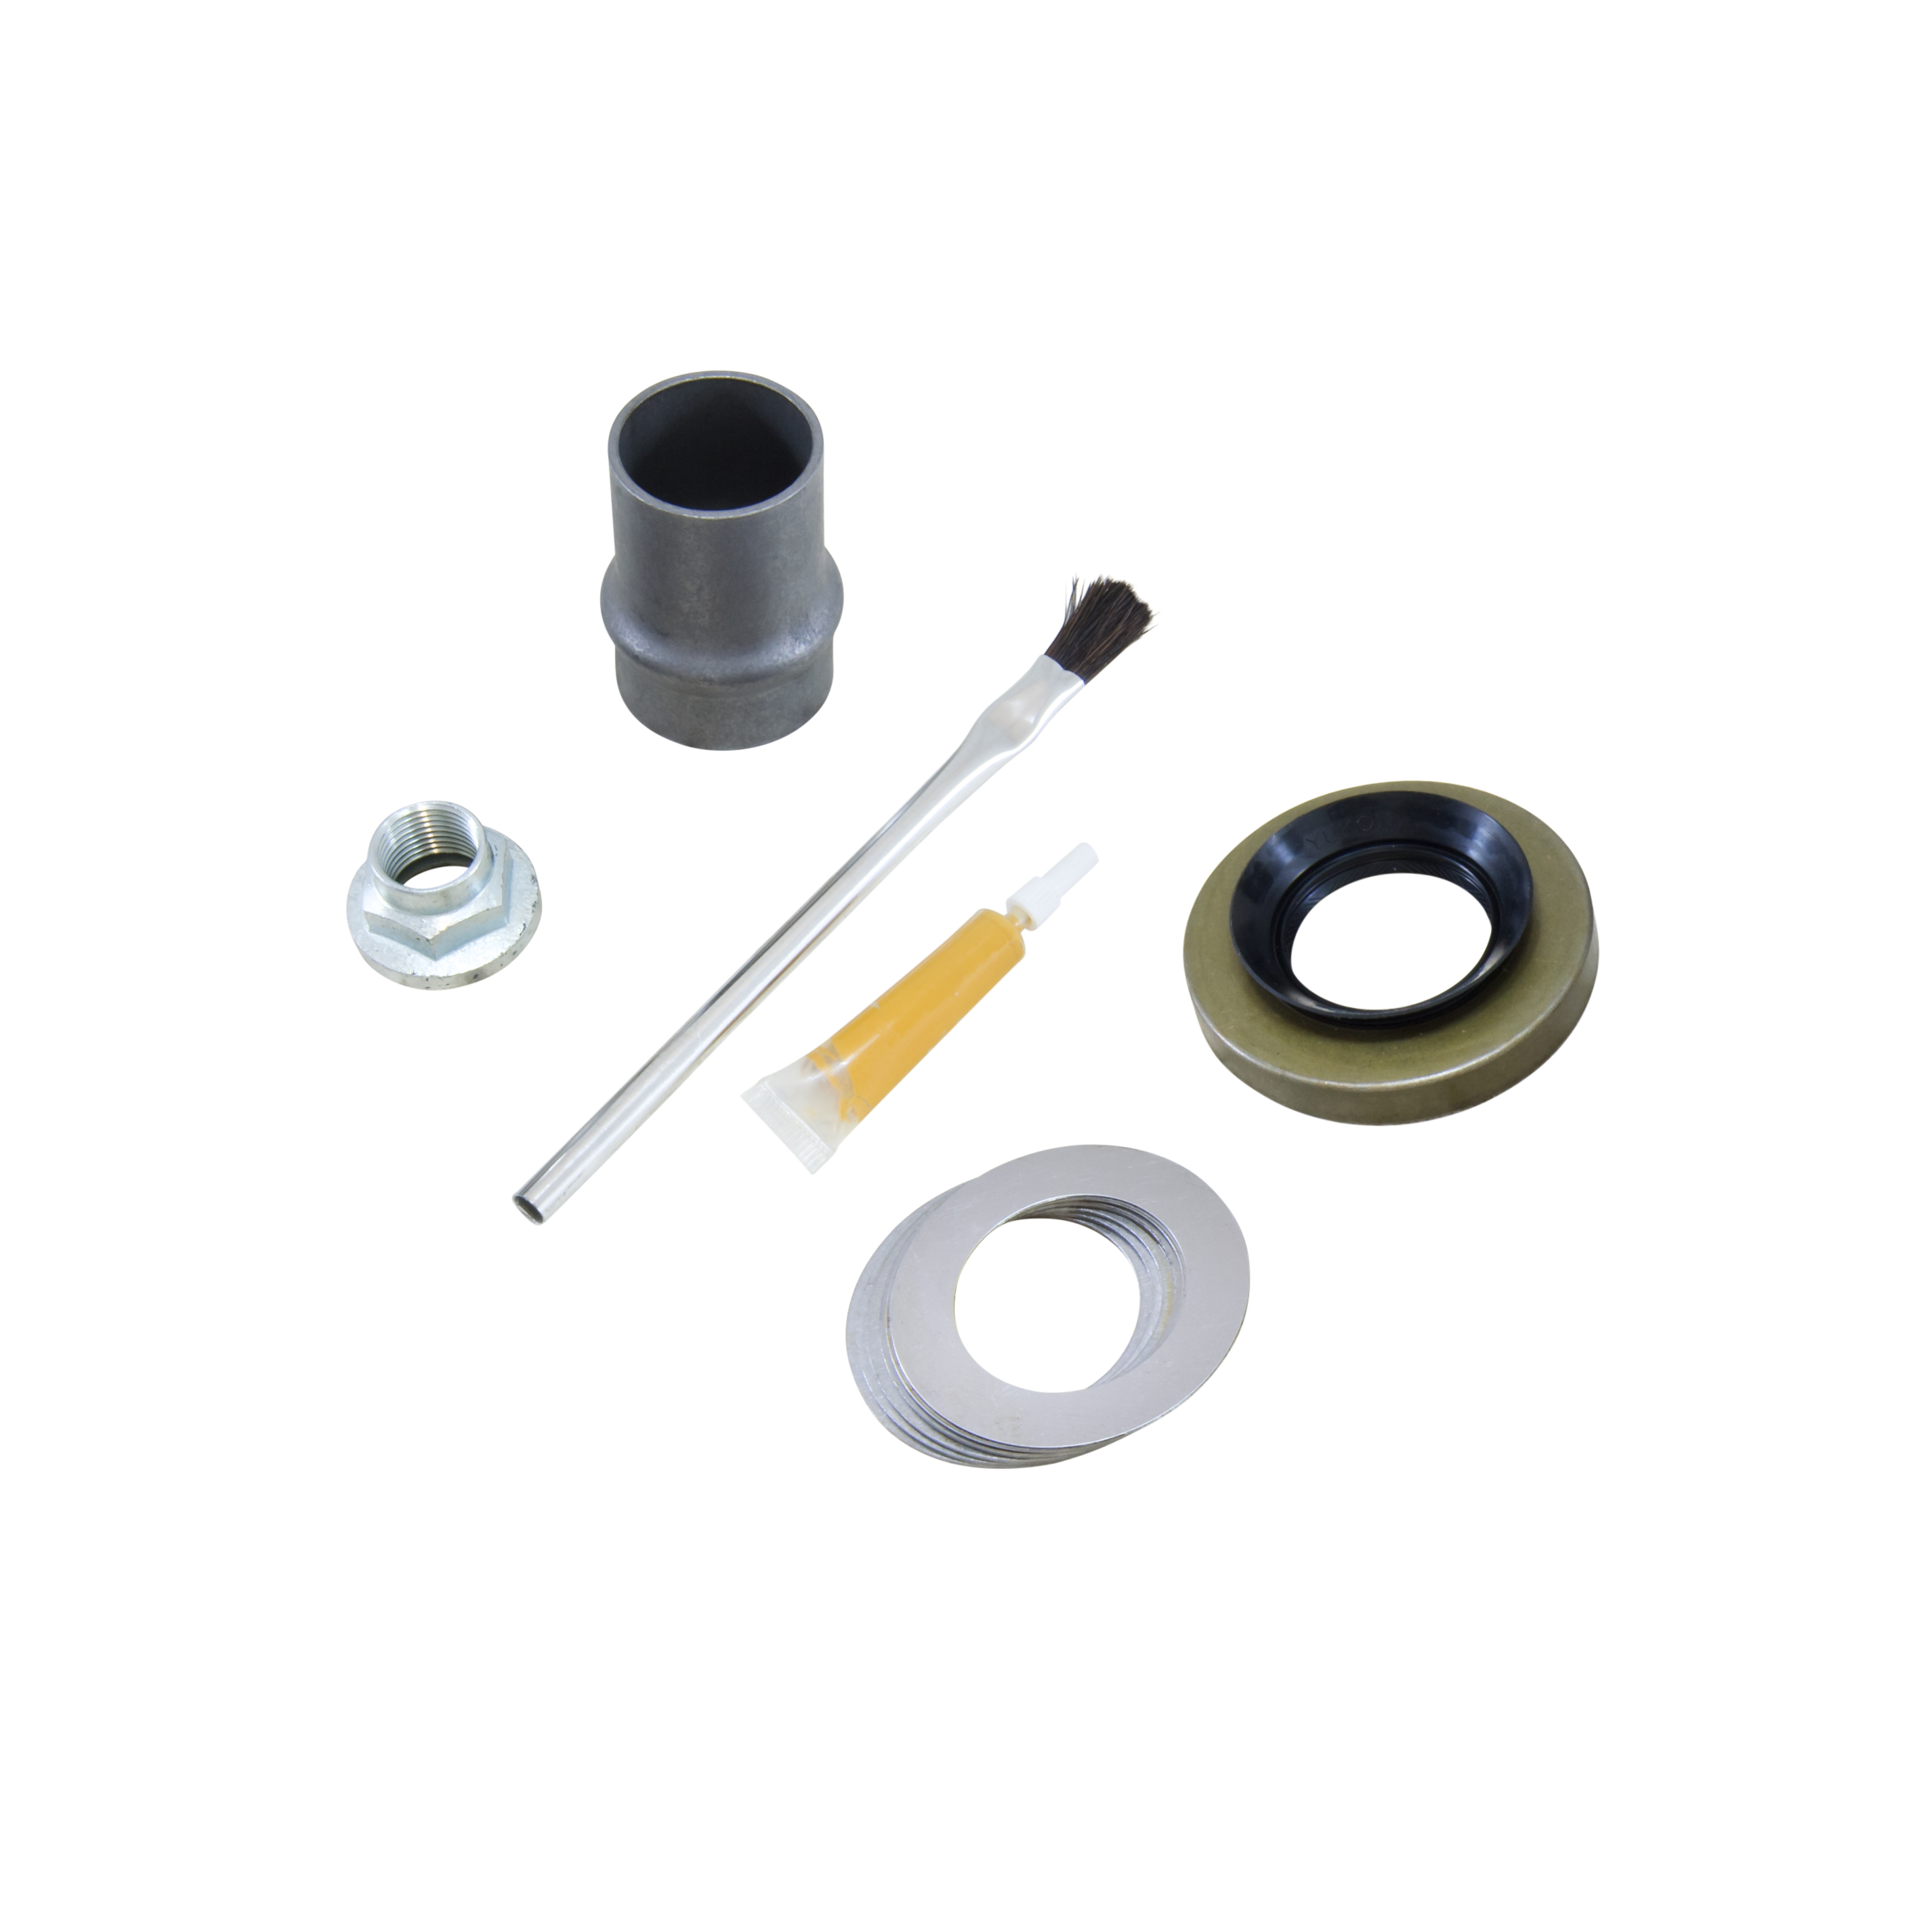 MK GM8.5OLDS-28 - Yukon Minor install kit for GM 8.5